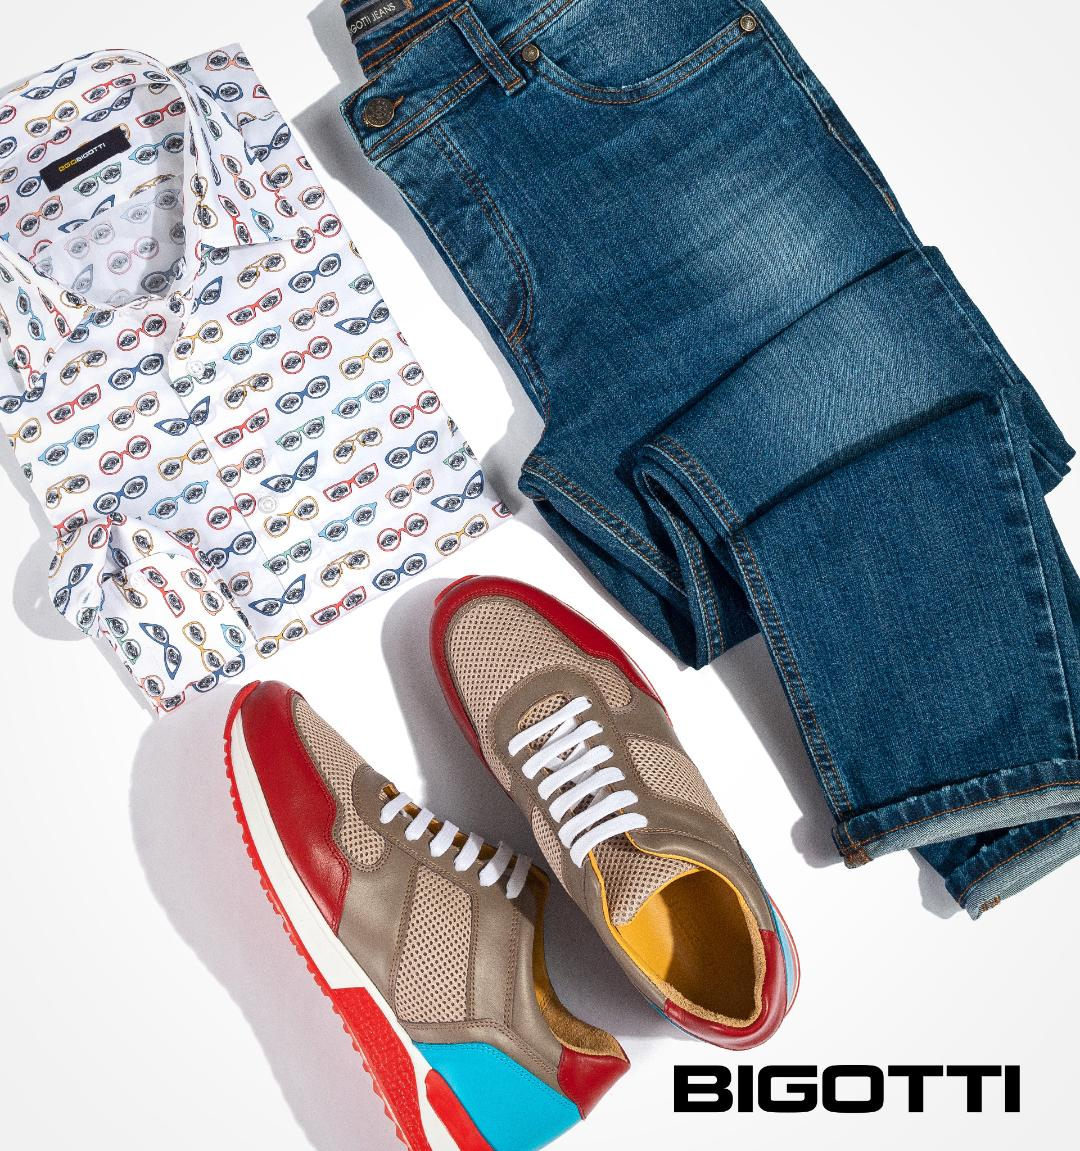 With right amount of #stretch for #allday #comfort and #longlasting #shape, these #Bigotti #jeans are the #perfect #choice for any #man.  https://t.co/qtSrZJ4SdF #Bigottiromania #Romania #moda #barbati #blugi #mensfashion #mensclothing #menswear #mensstyle #lookoftheday #OOTD https://t.co/HcrflItlQR